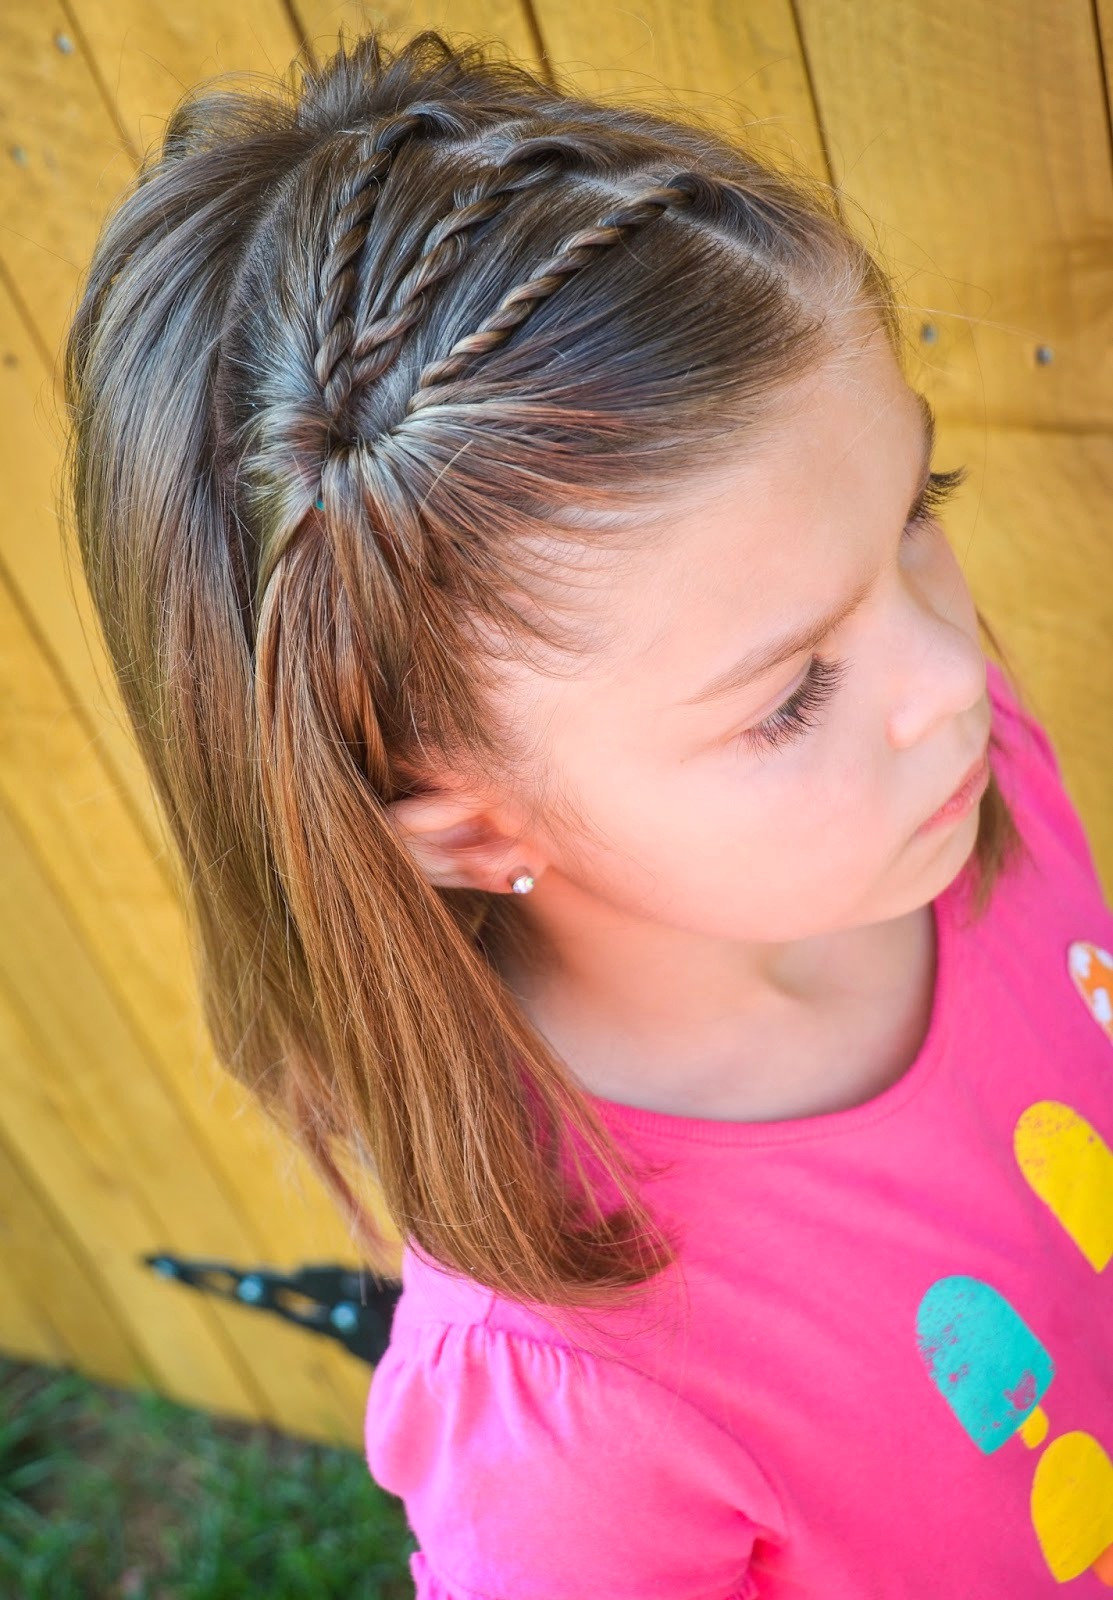 Best ideas about Girl Hairstyle . Save or Pin 25 Little Girl Hairstyles you can do YOURSELF Now.